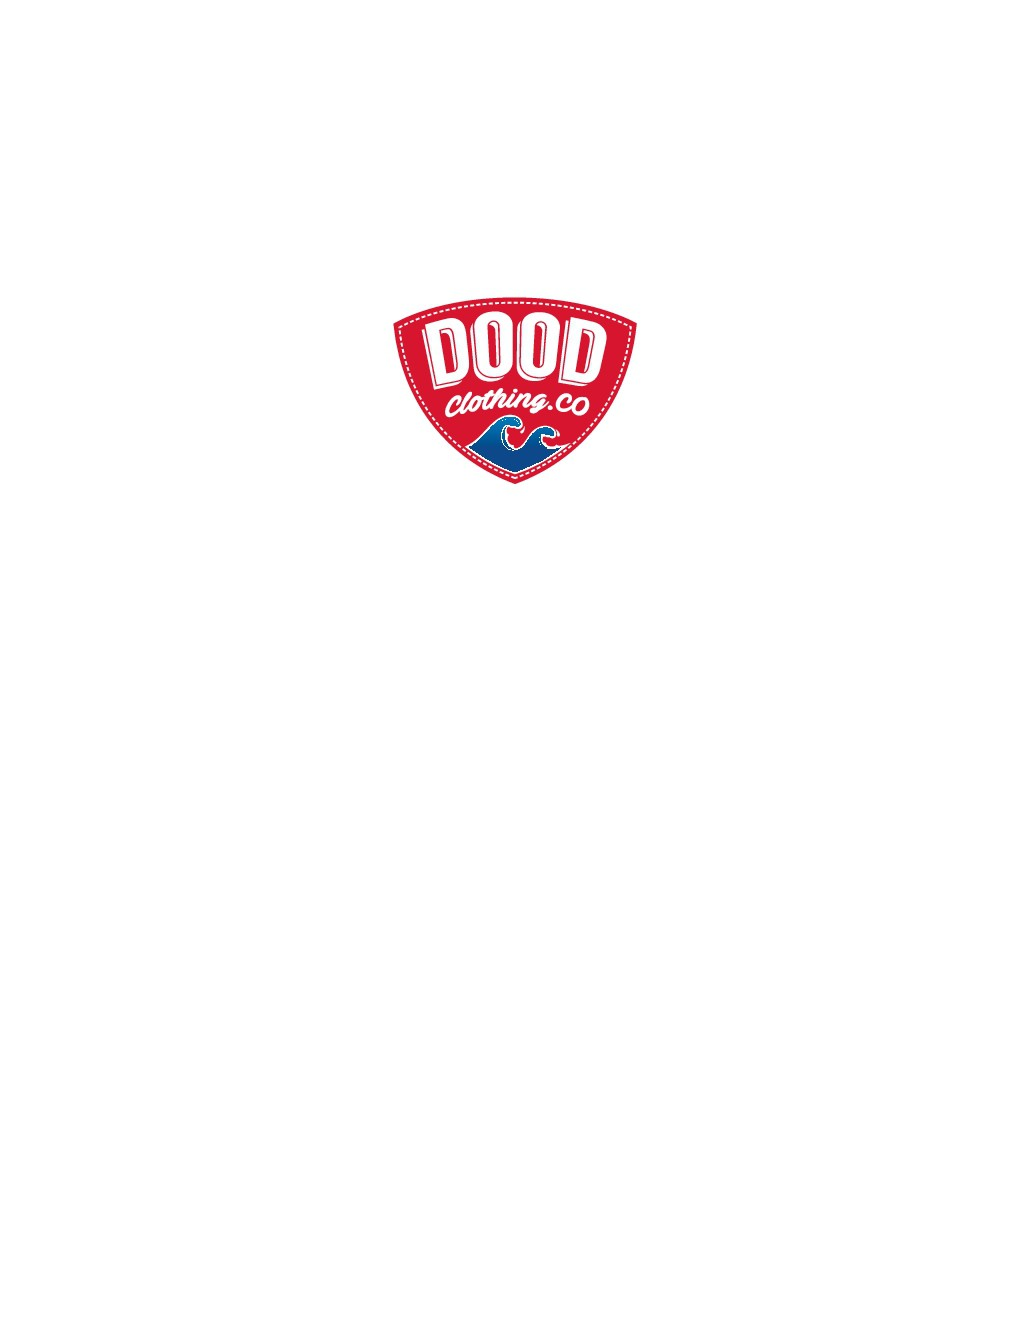 Create a clean but catchy logo for a T-shirt Company, Dood Clothing Co.